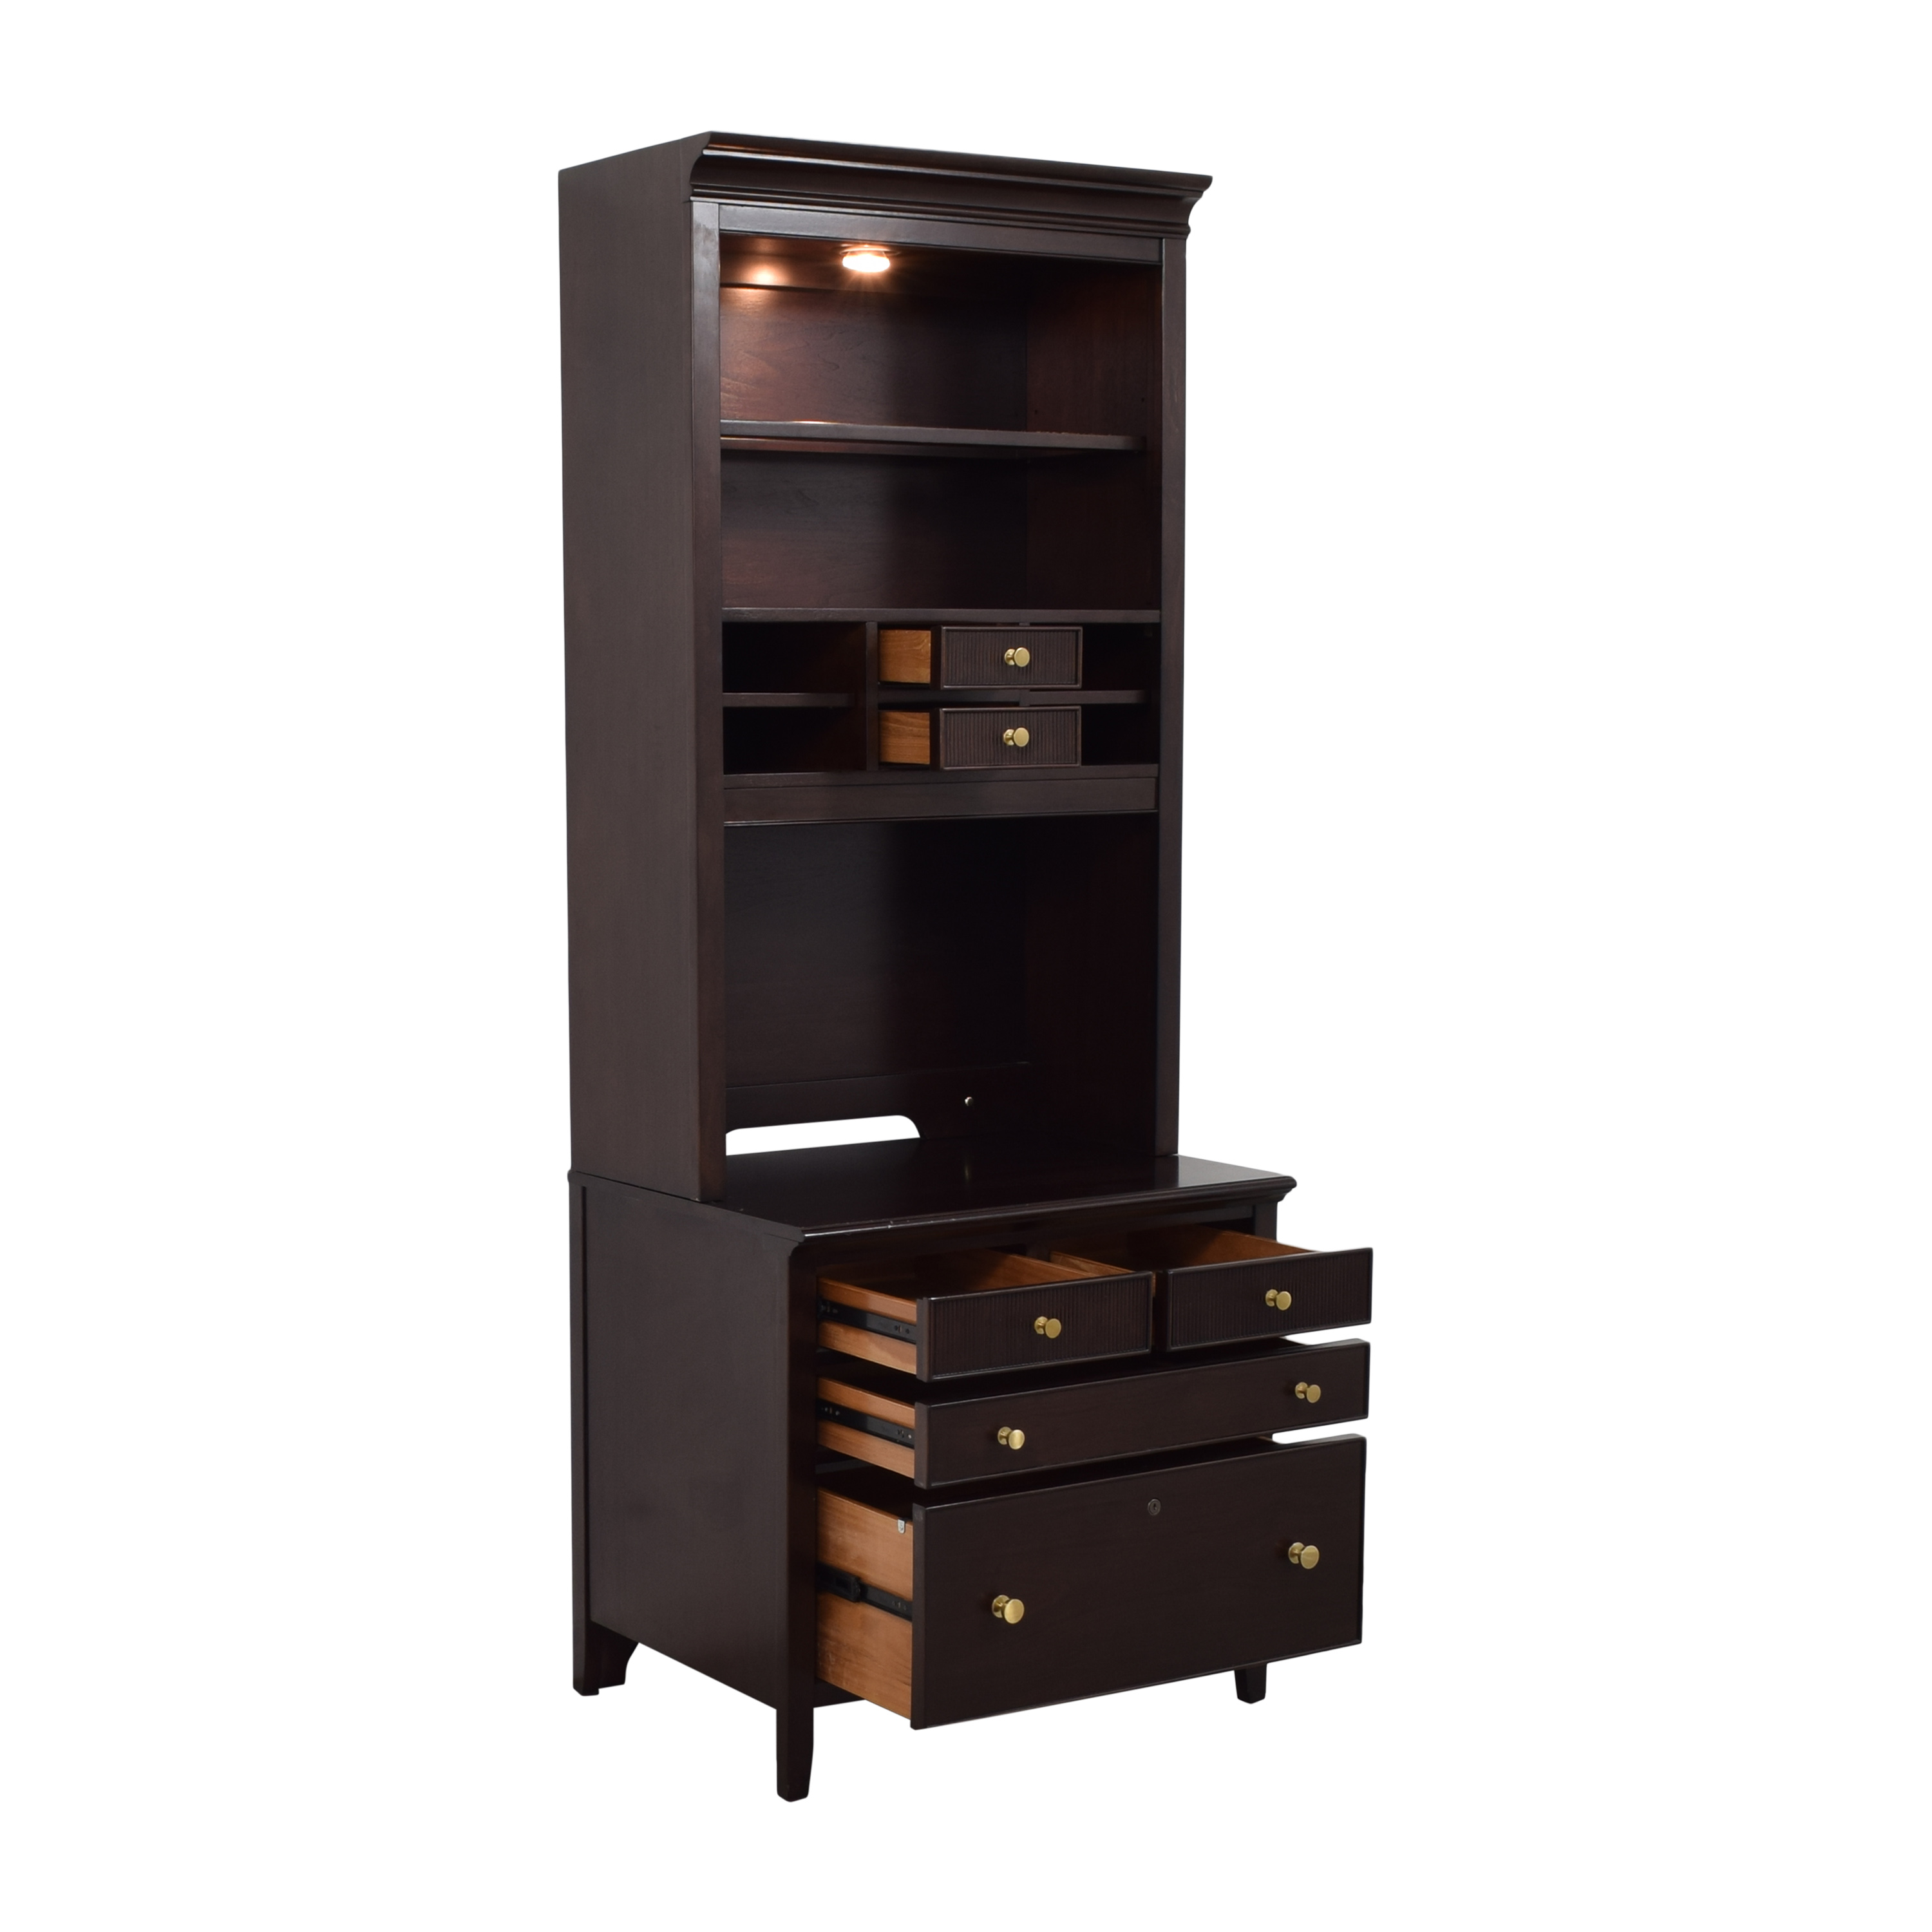 Stanley Furniture Stanley Furniture Cabinet with Shelving ma